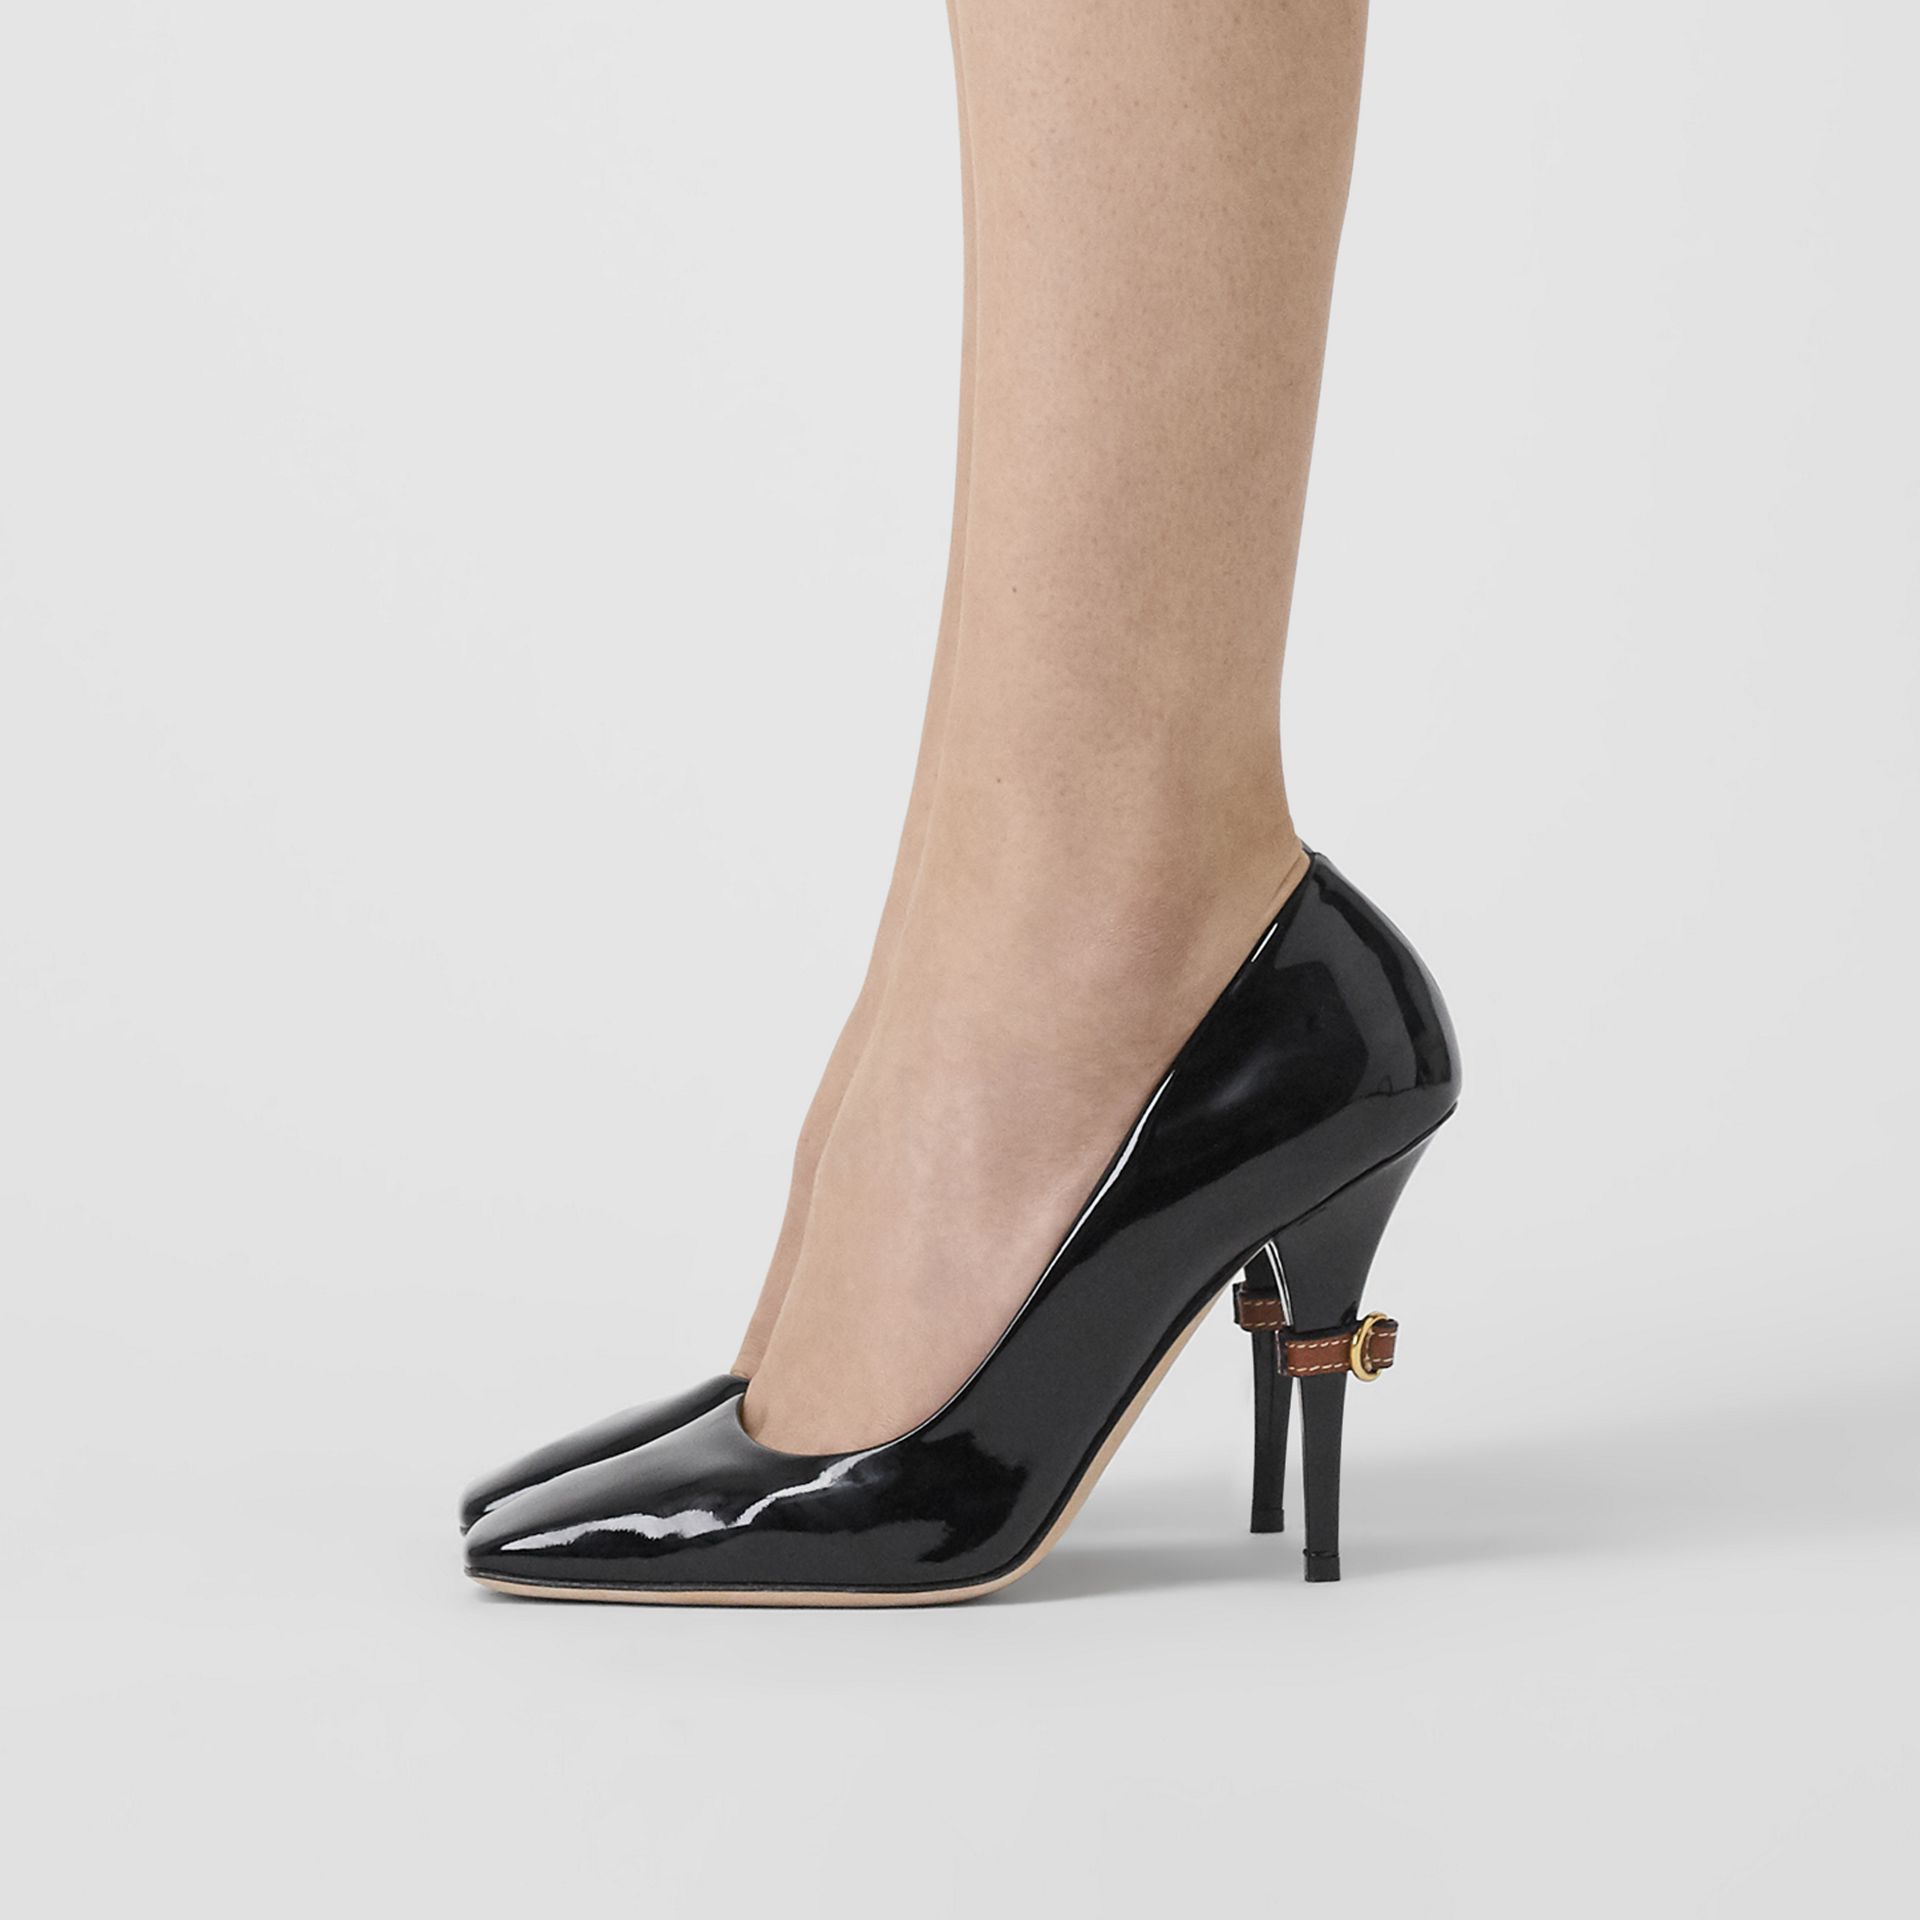 D-ring Detail Patent Leather Square-toe Pumps in Black - Women | Burberry - gallery image 2